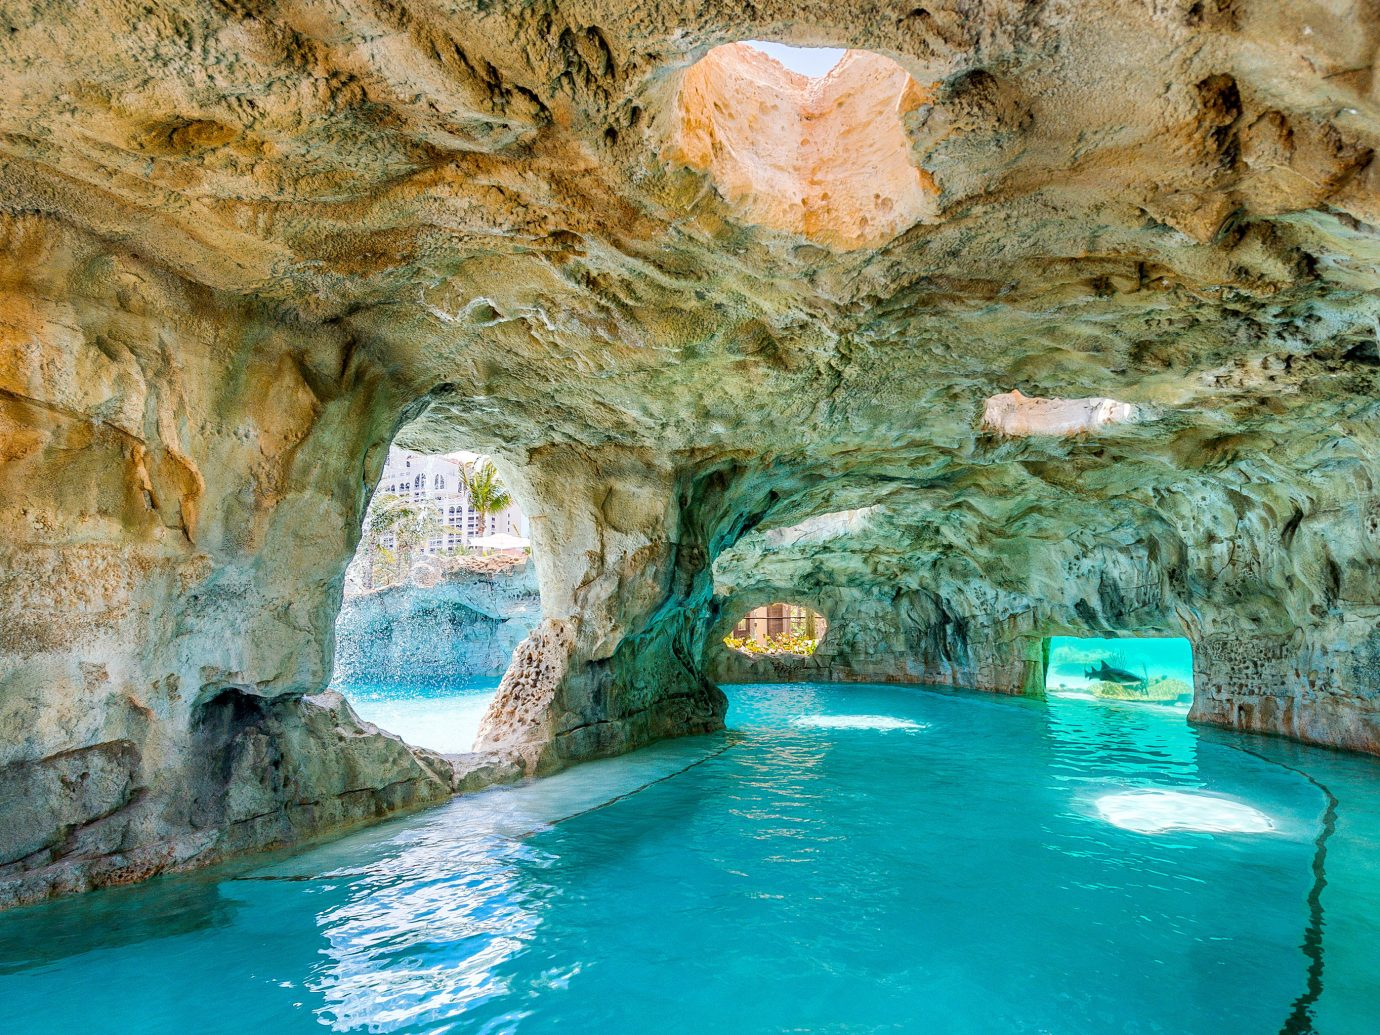 Beach Boutique Hotels Hotels Luxury Travel Summer Travel Trip Ideas water sea cave formation rock cave underground lake swimming pool watercourse Nature water resources geology wadi mineral spring Pool narrows leisure thermae tourism natural arch pond swimming colored